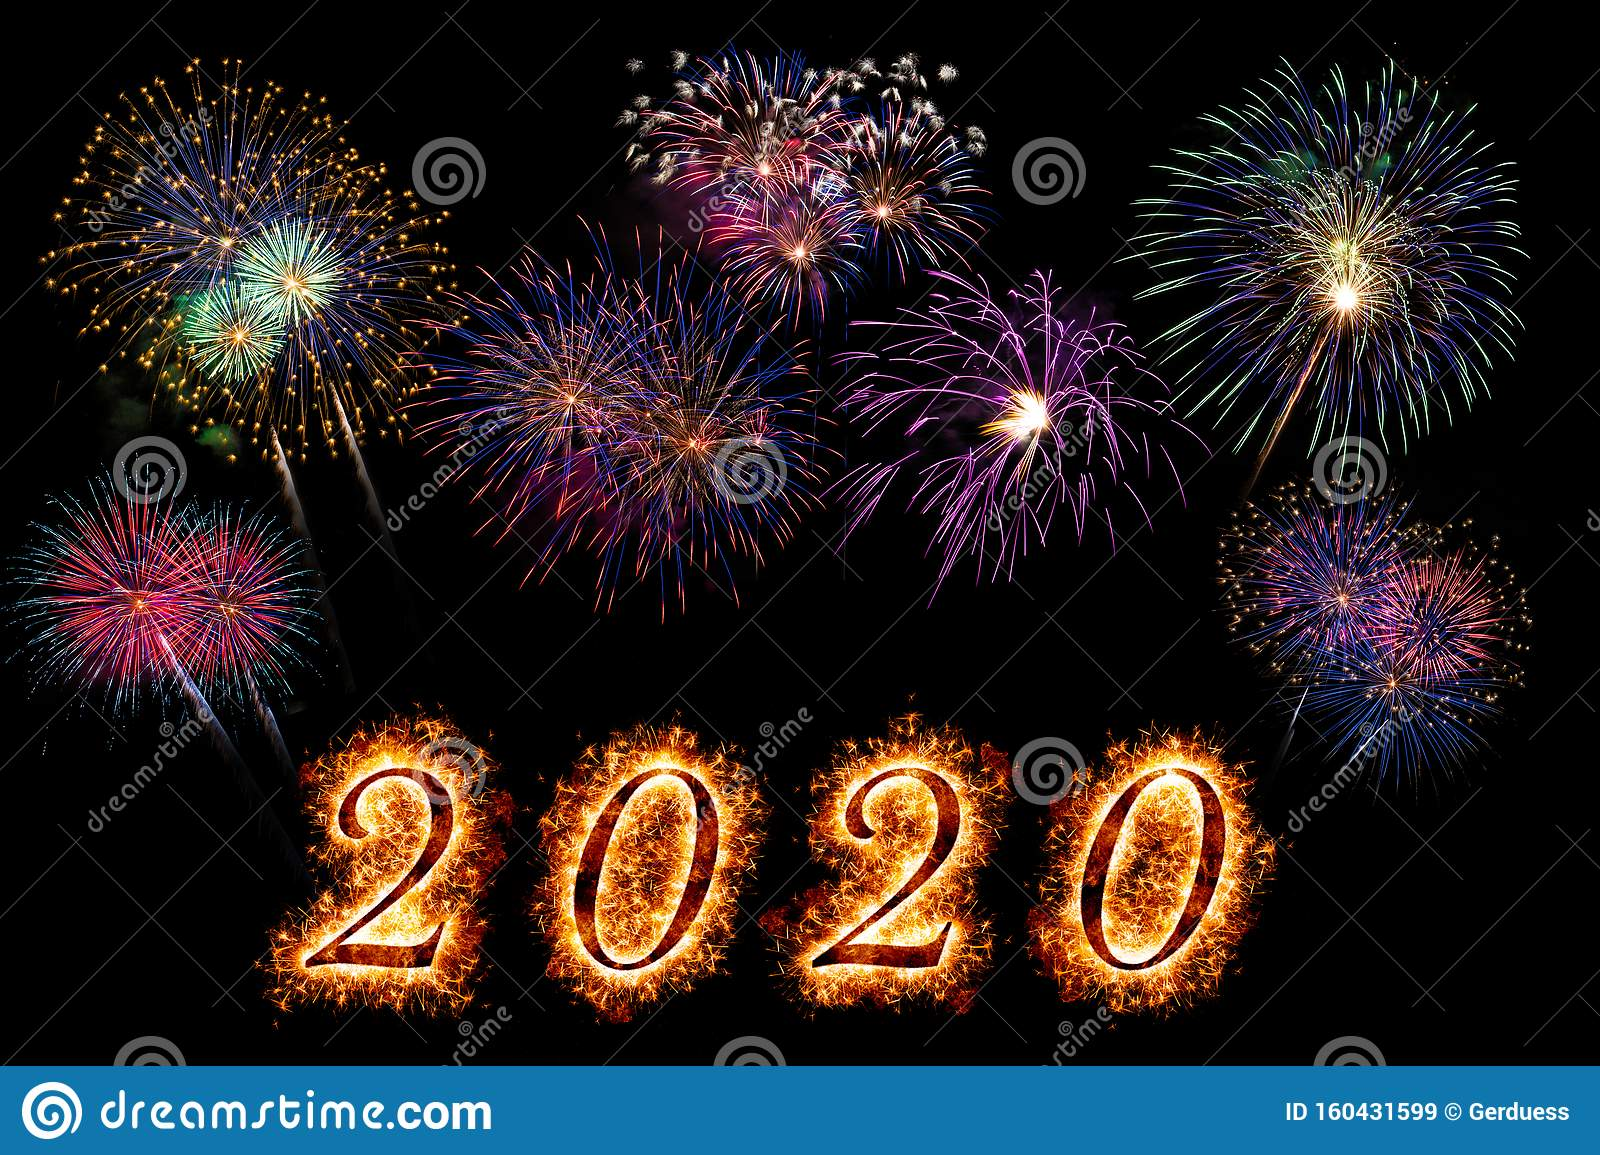 44 361 happy new year 2020 photos free royalty free stock photos from dreamstime https www dreamstime com happy new year letters sparkle fireworks black background fire image160431599